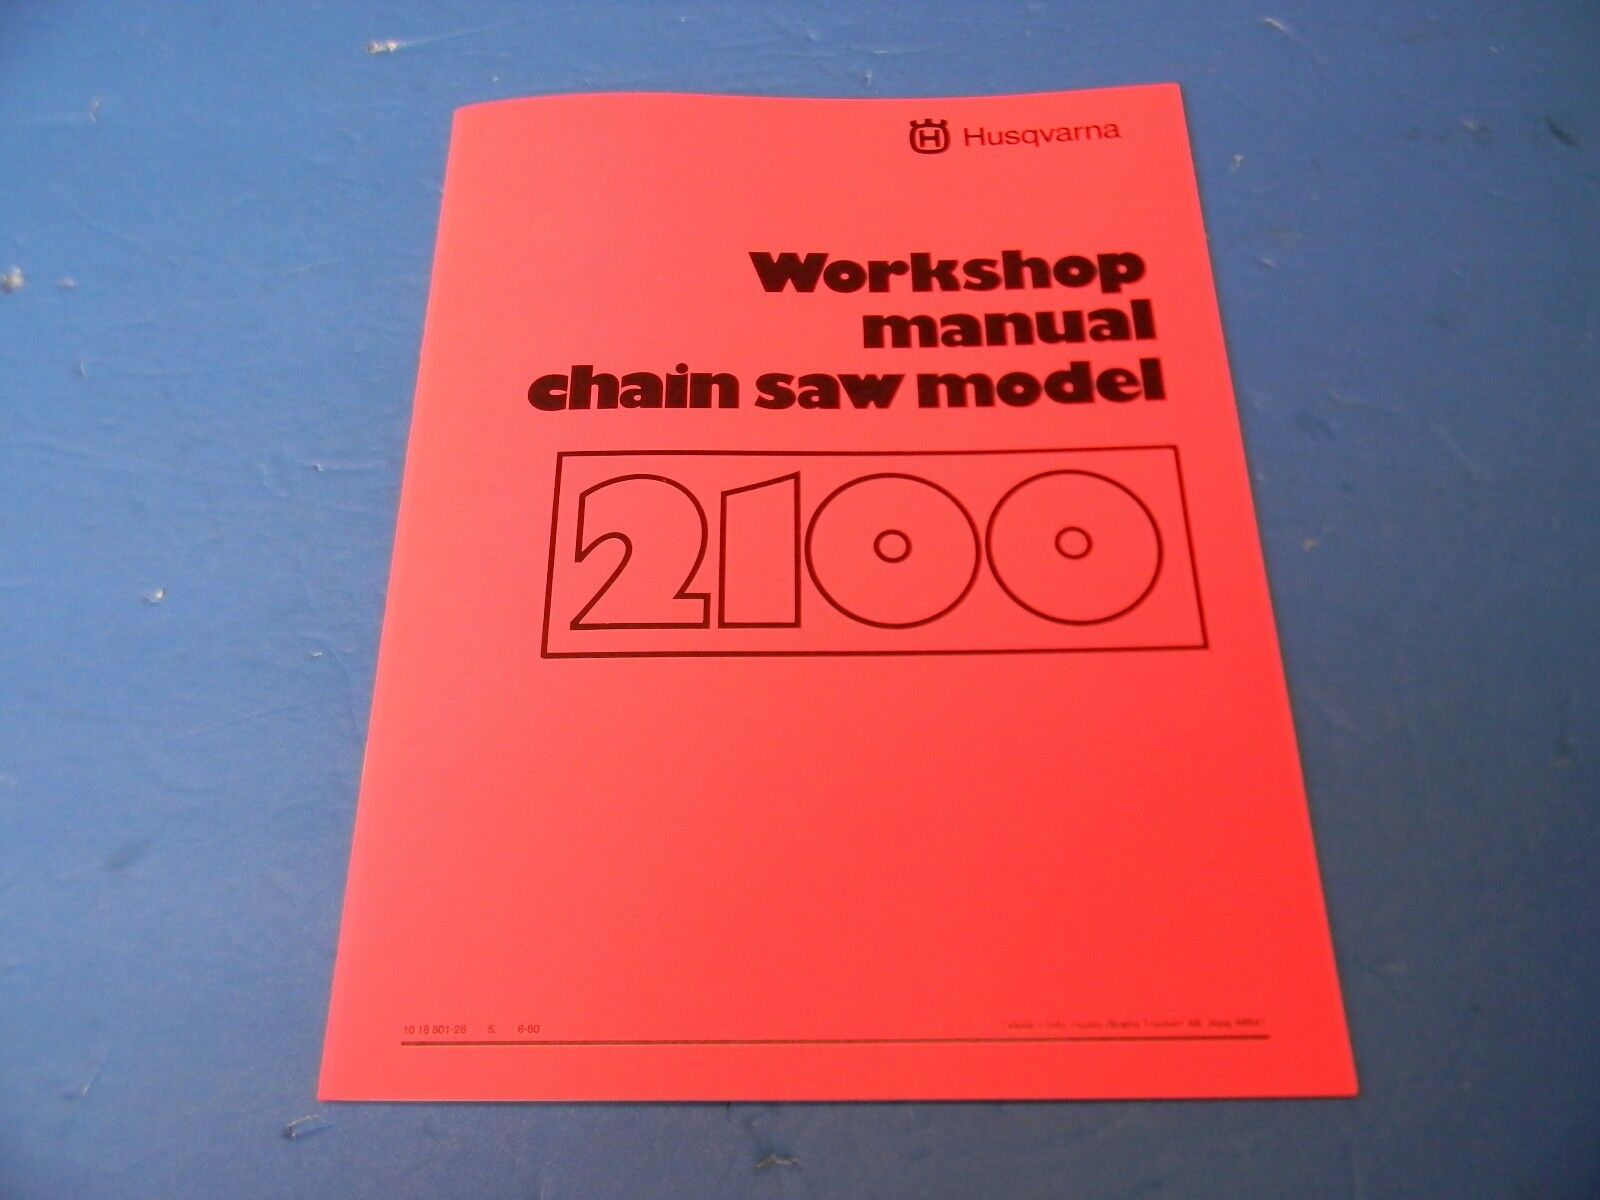 ... Array - workshop service manual new for husqvarna 2100 chainsaw rh  picclick com